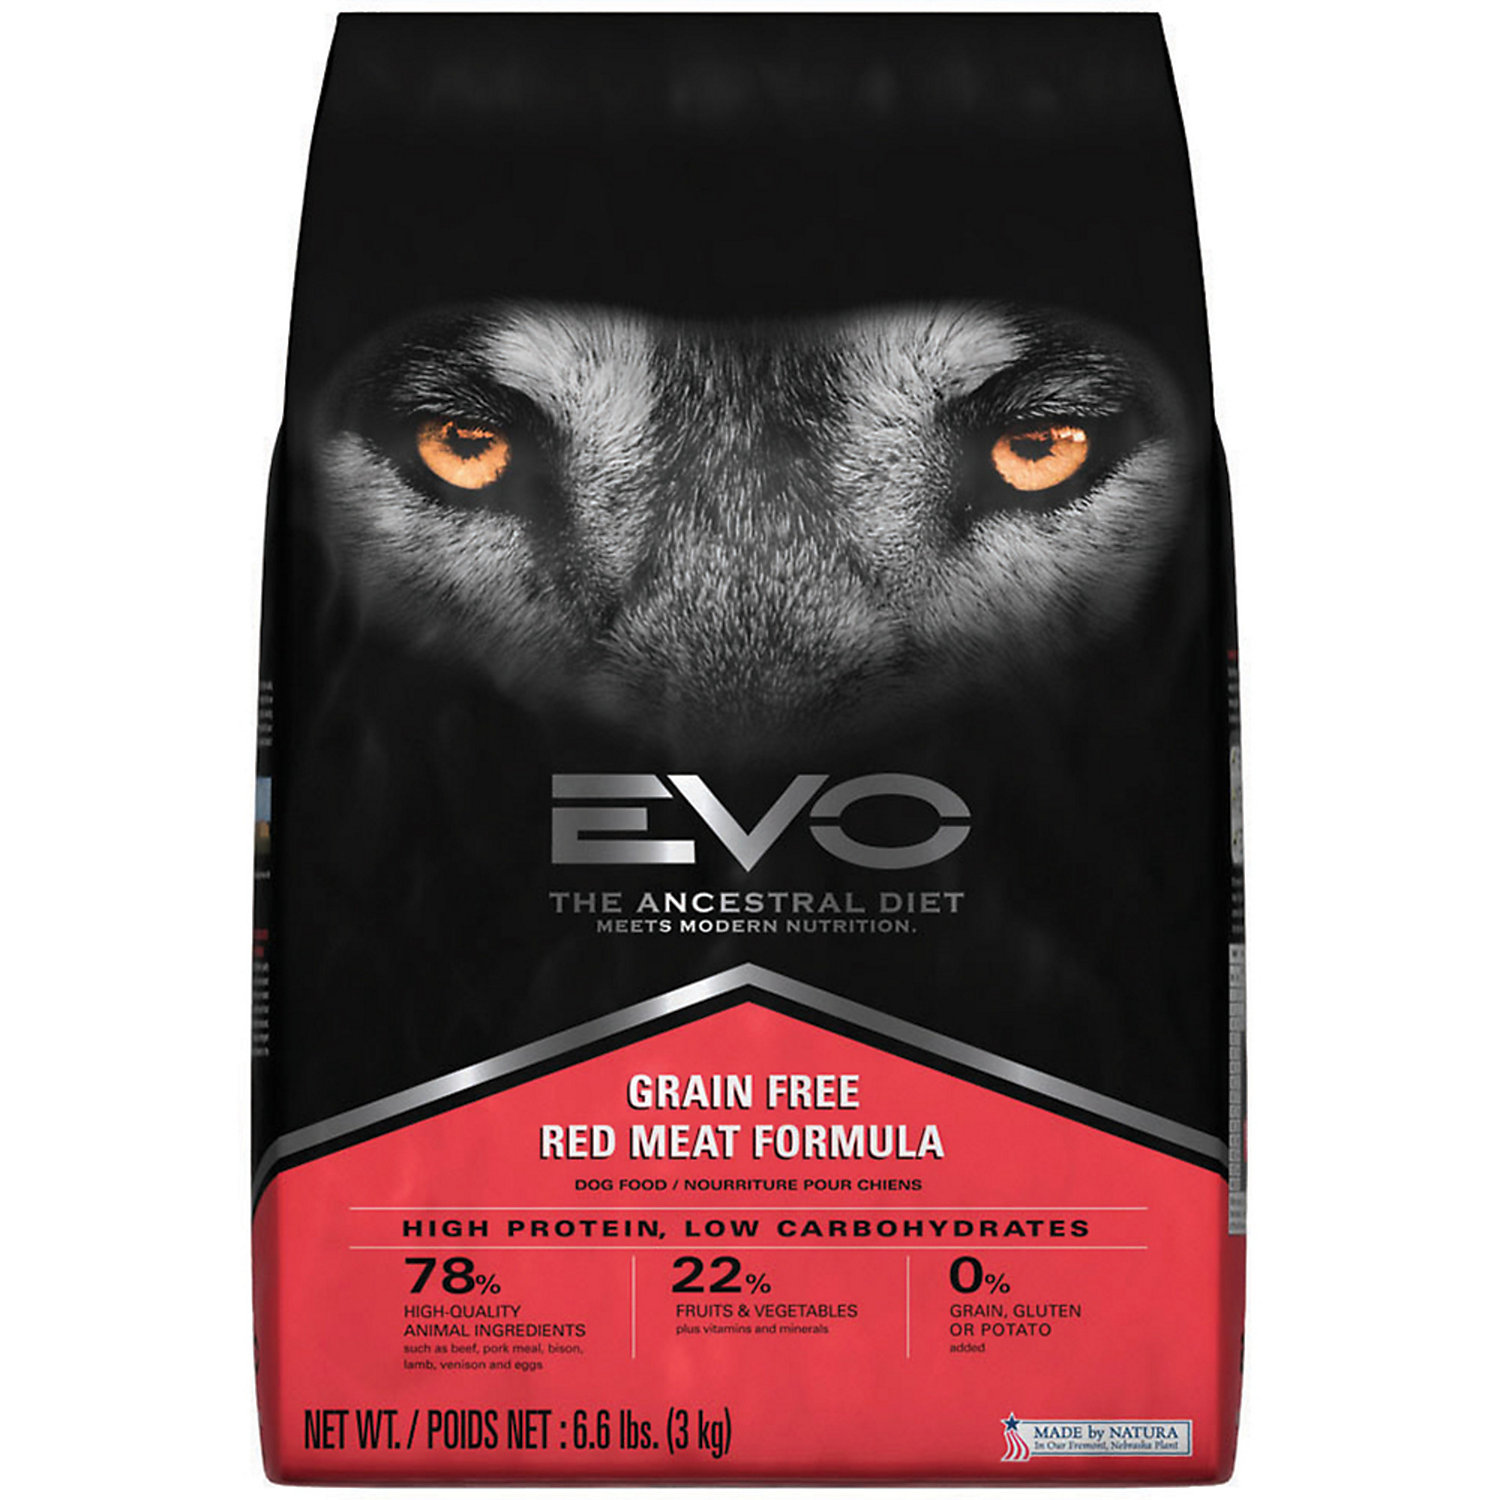 751485126777 upc evo red meat formula 66 lb upc lookup for Evo red meat dog food